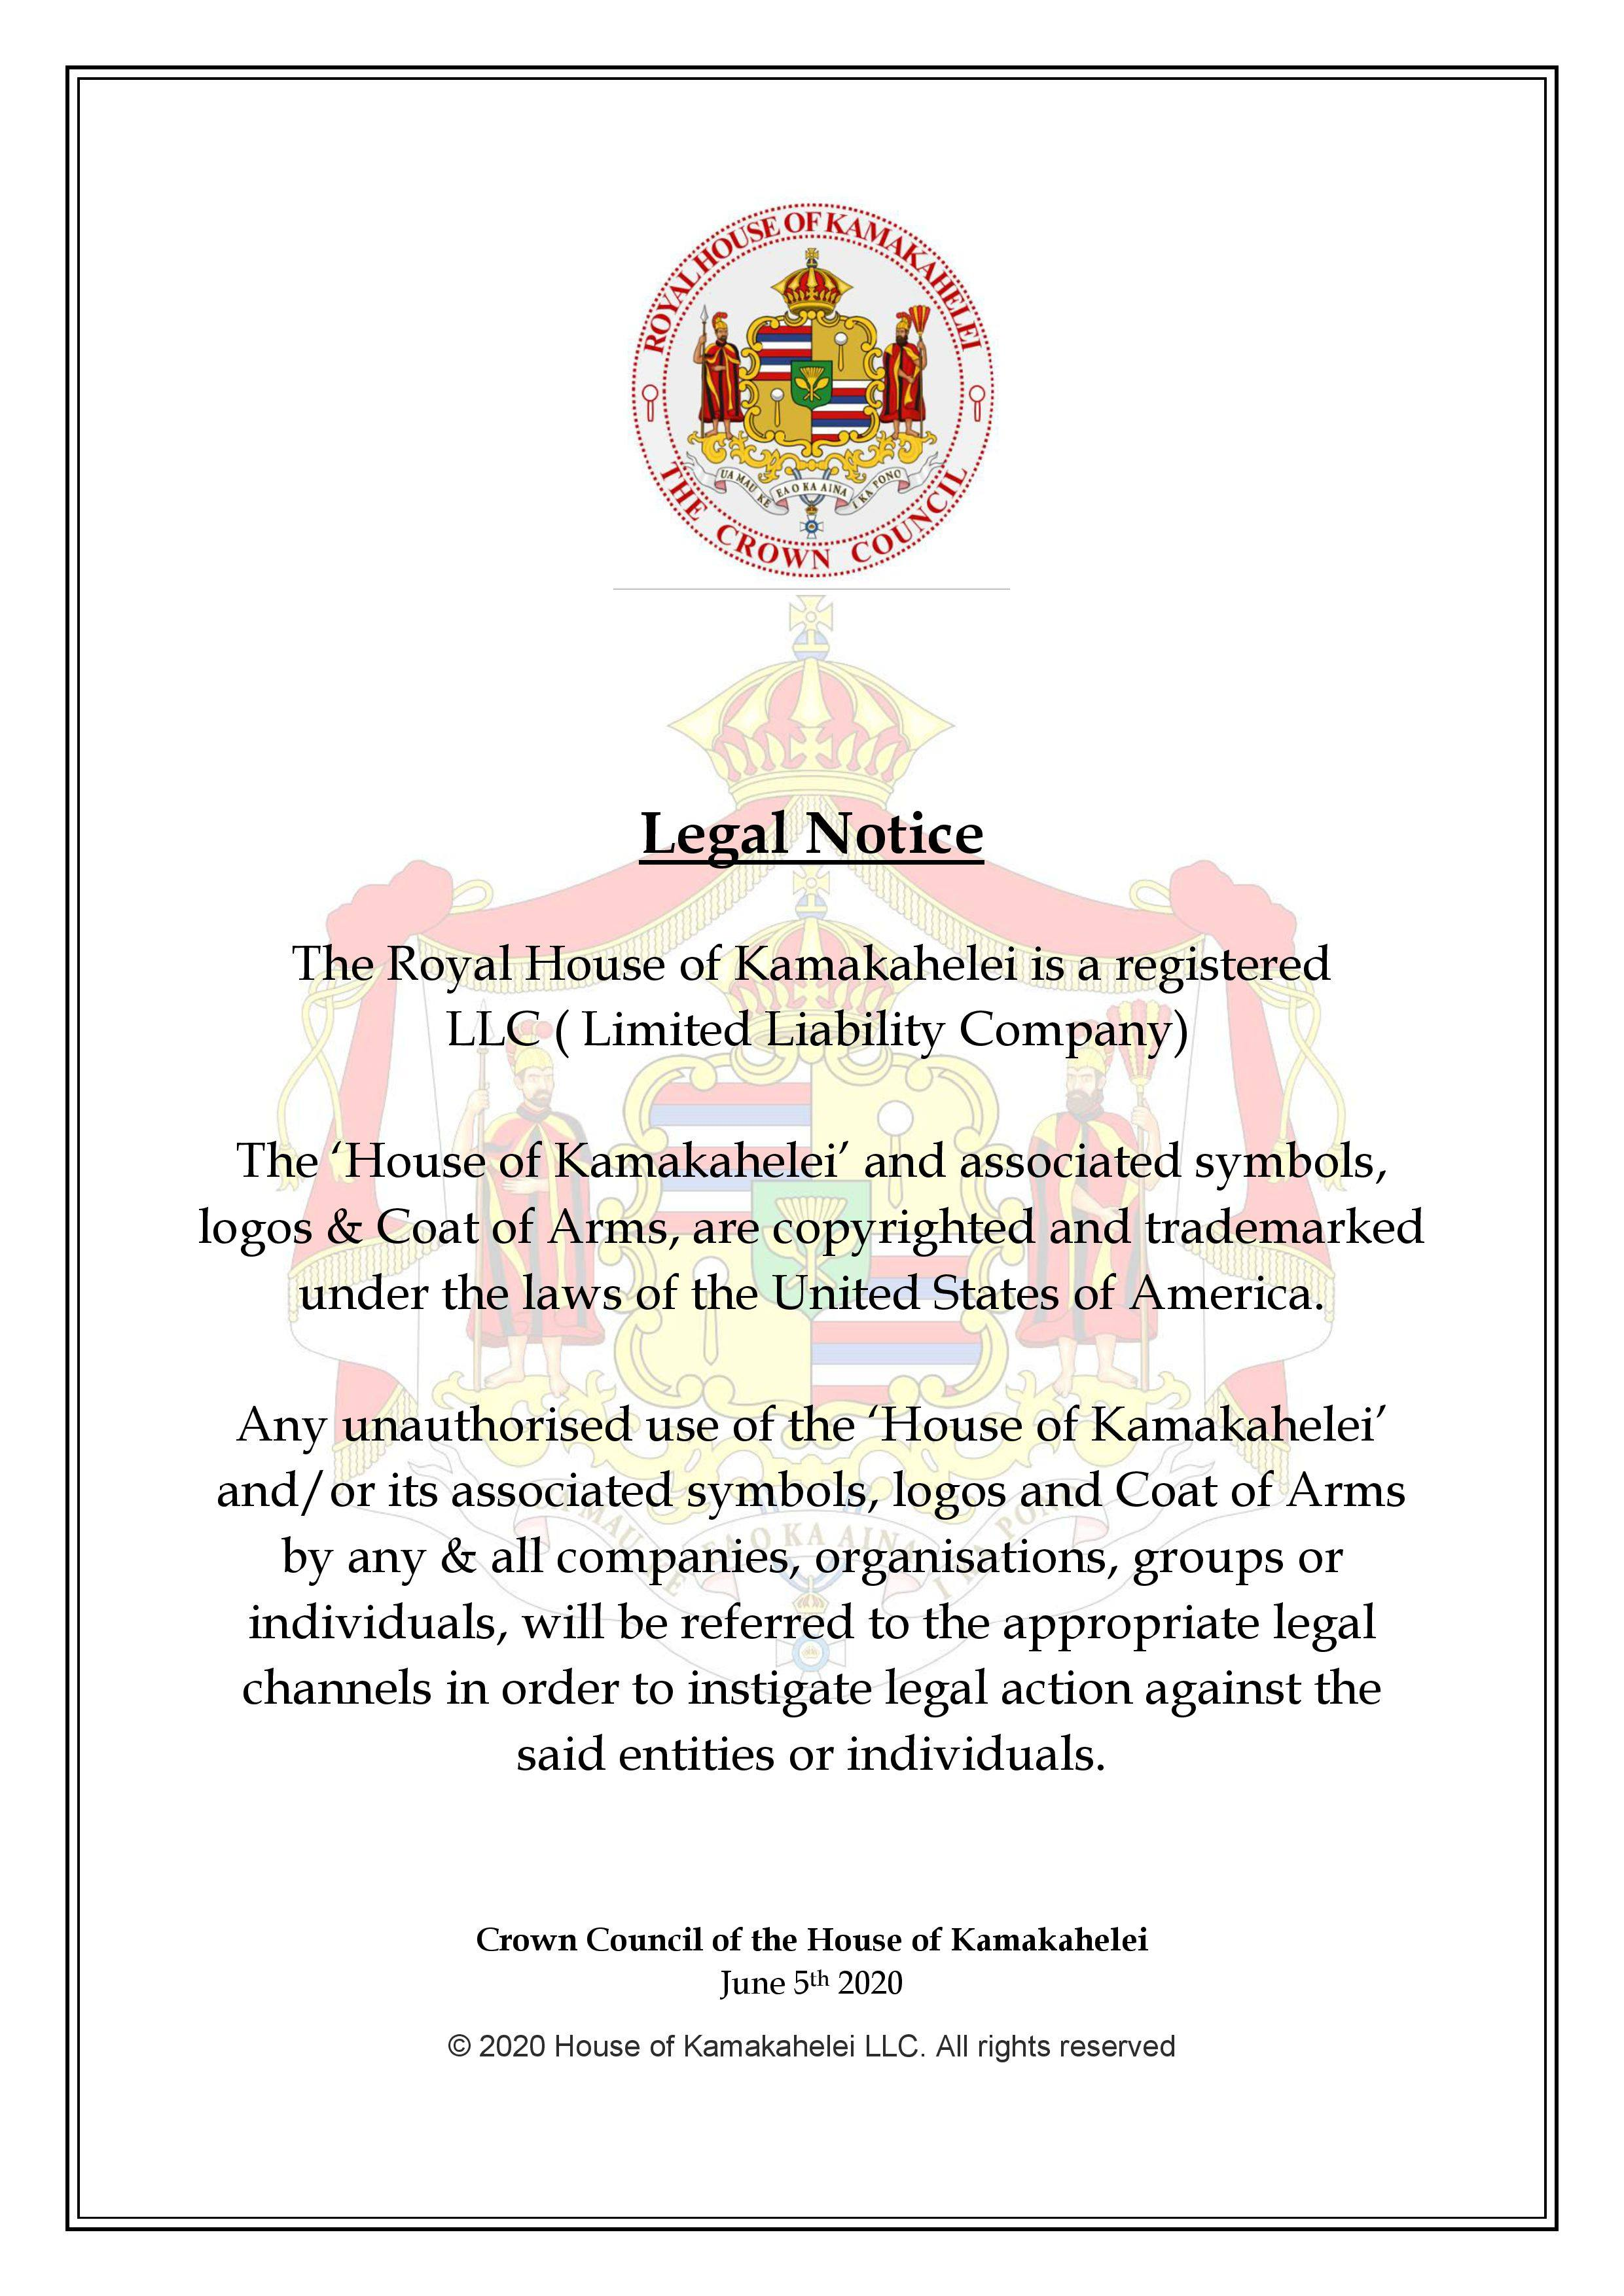 Legal Notice re: Copyright & Trademark dated 6/5/2020